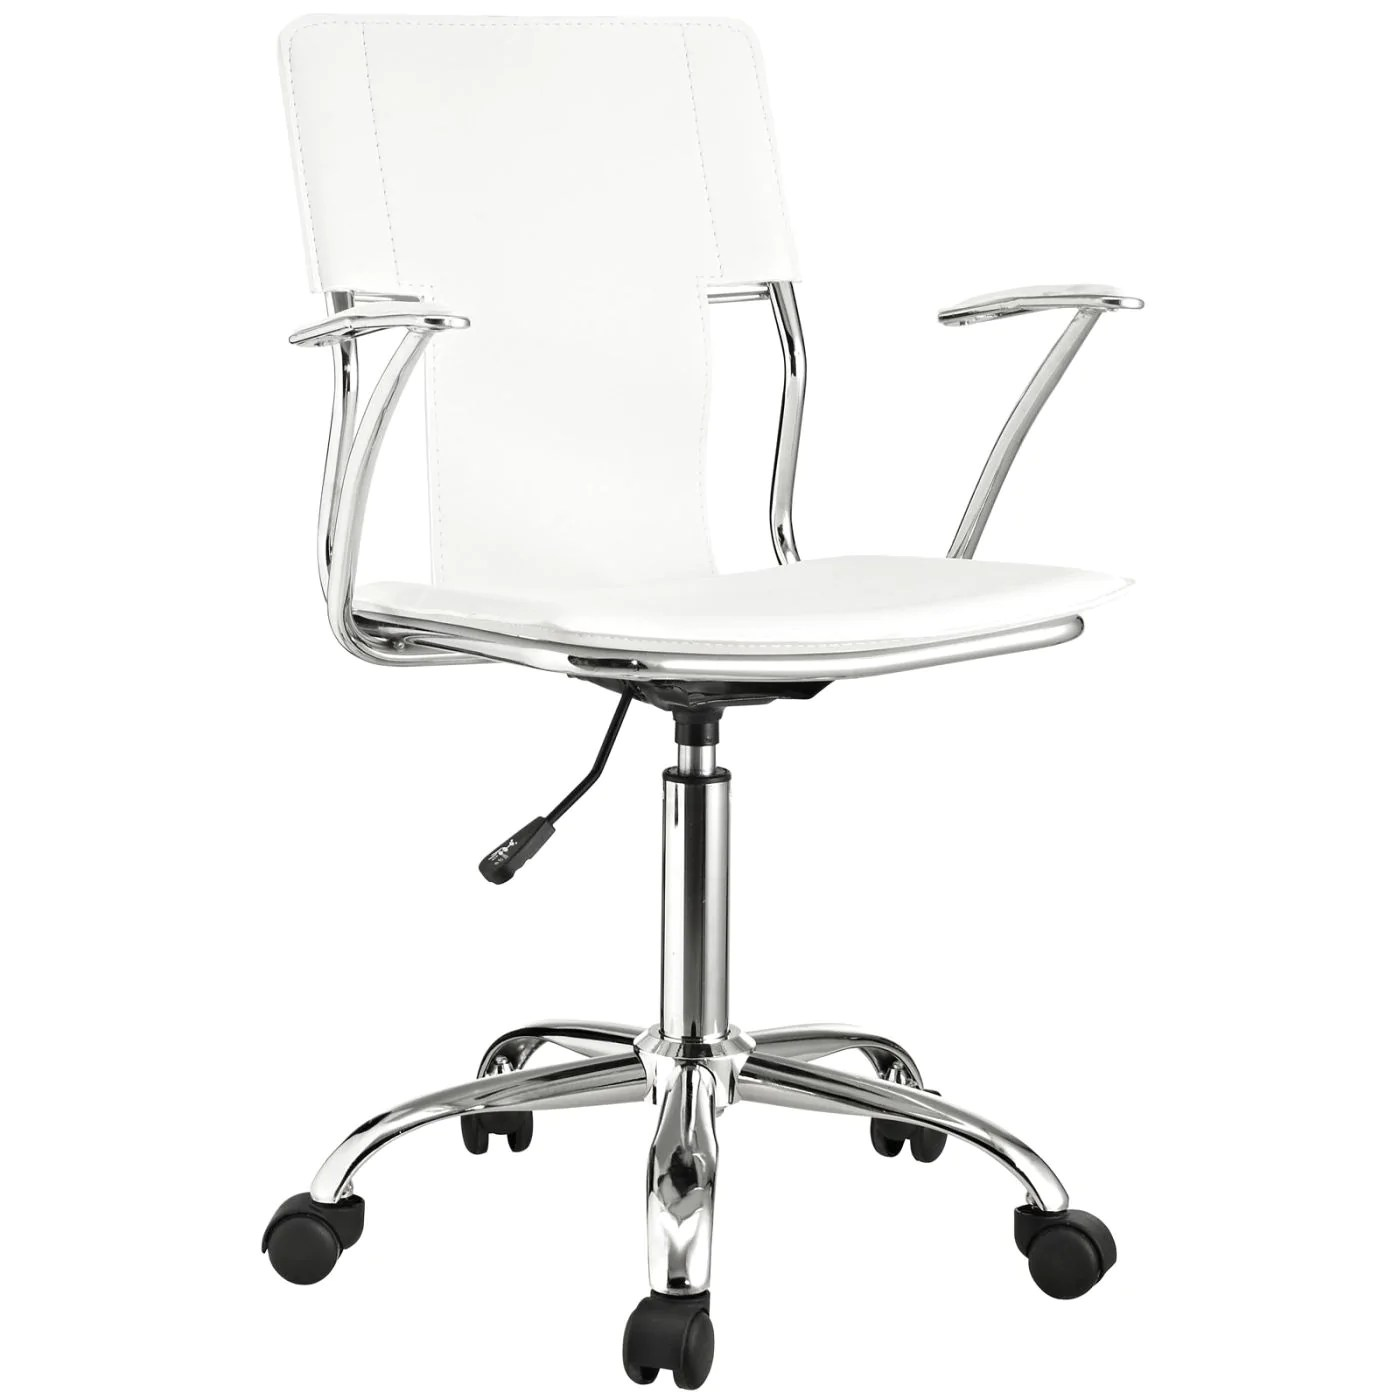 office chair sale gaming pc world uk modway chairs on eei 198 whi studio faux leather 848387010317